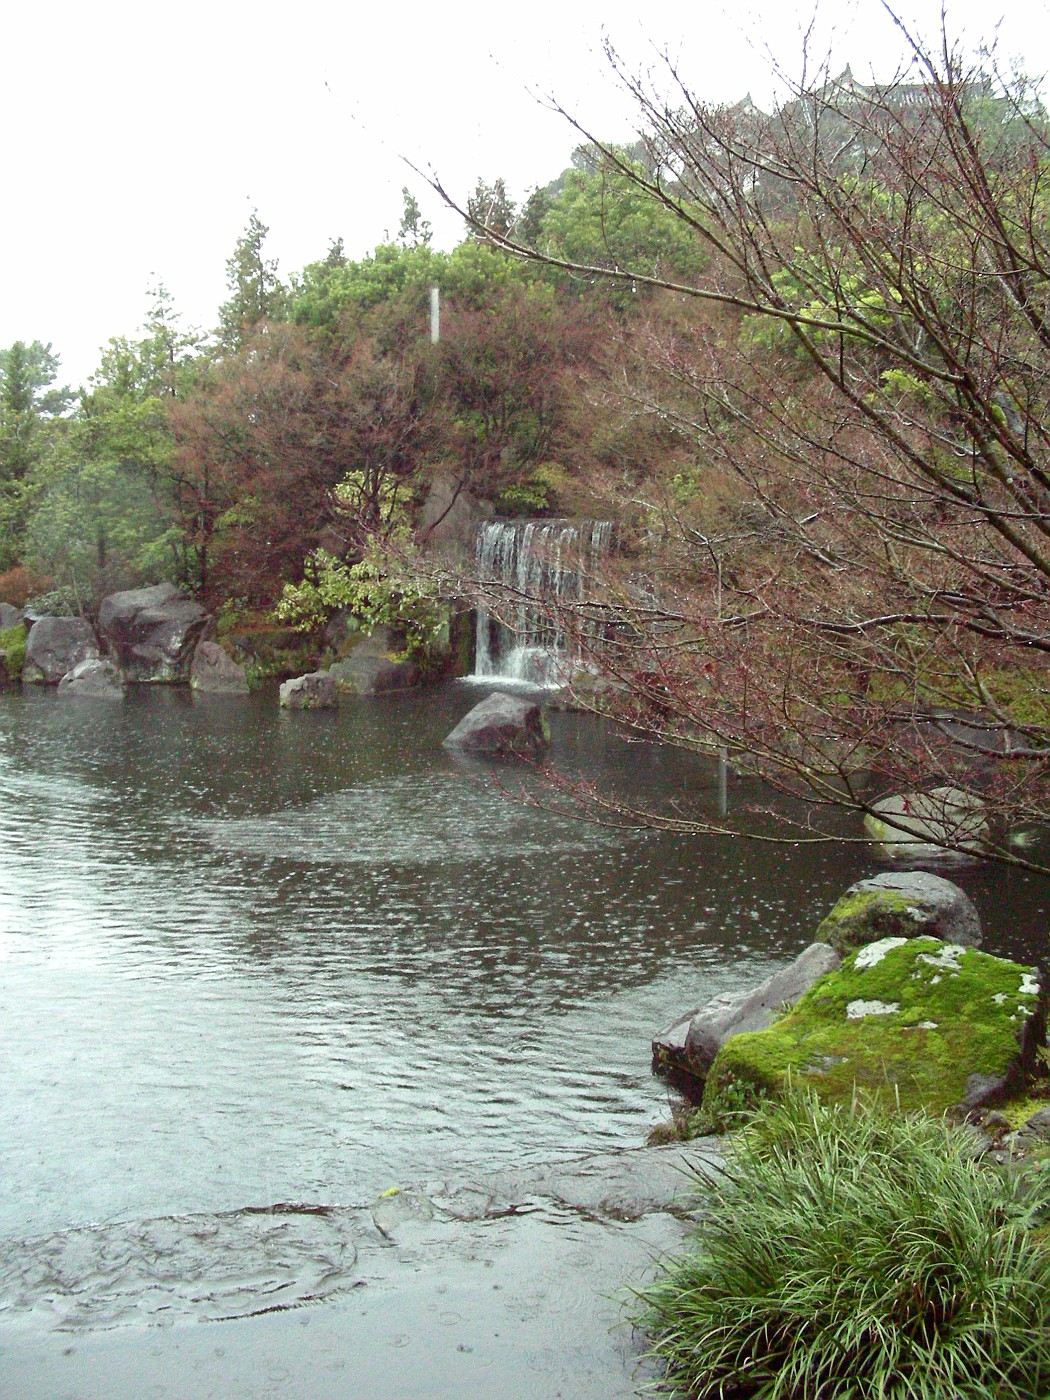 Pond in the garden of the lord's house